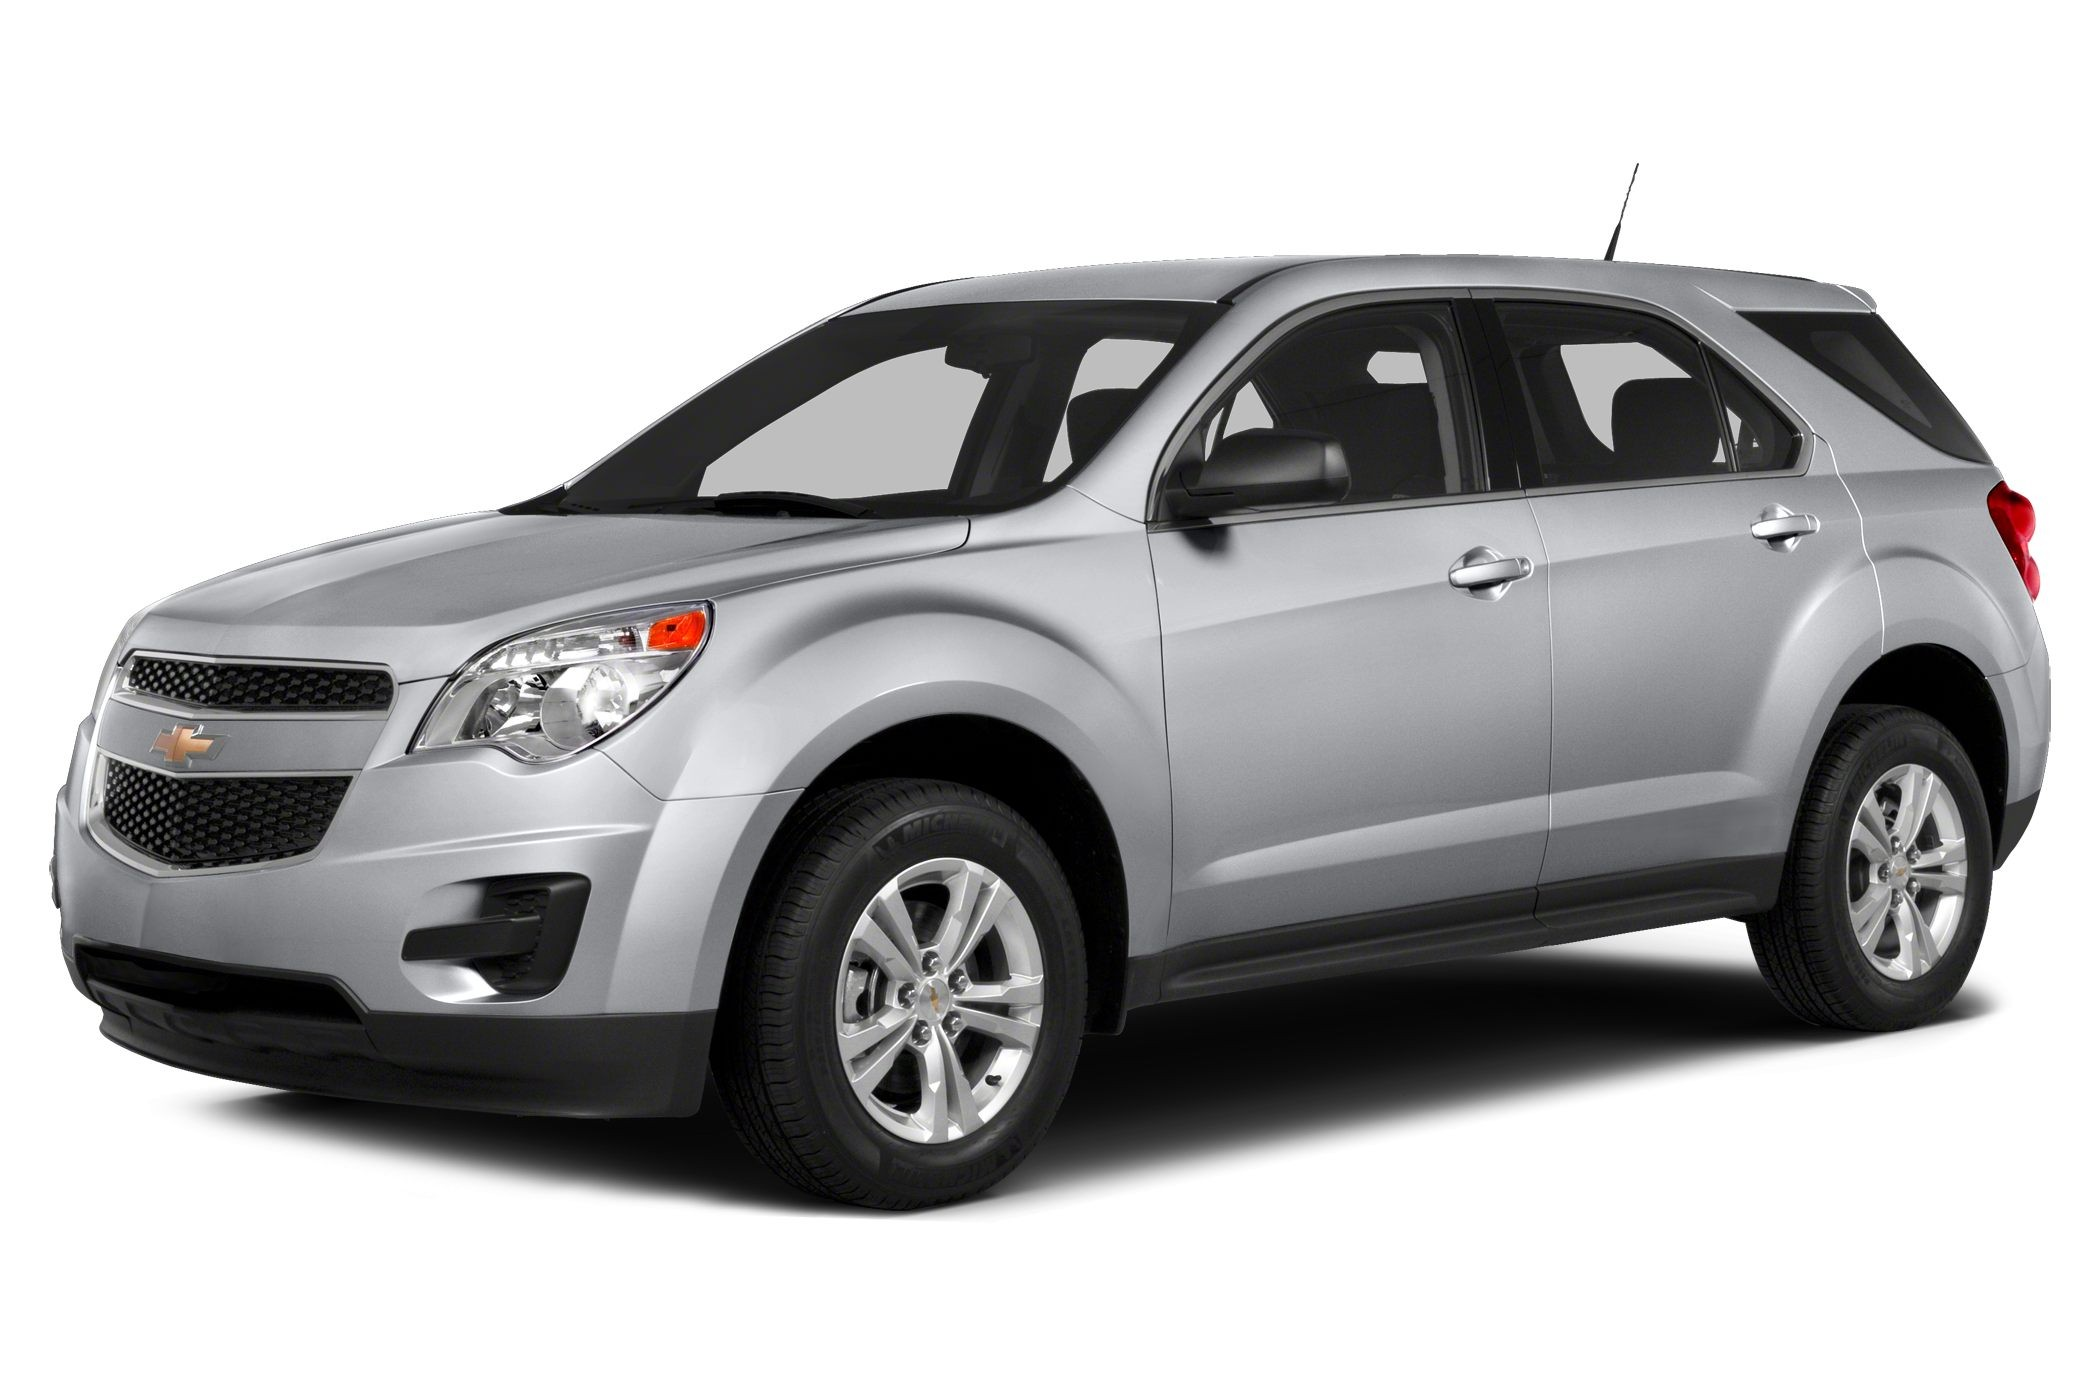 2005 Chevy Equinox Engine Diagram 2013 Chevrolet Equinox Specs and Prices Of 2005 Chevy Equinox Engine Diagram 2013 Chevrolet Equinox Specs and Prices